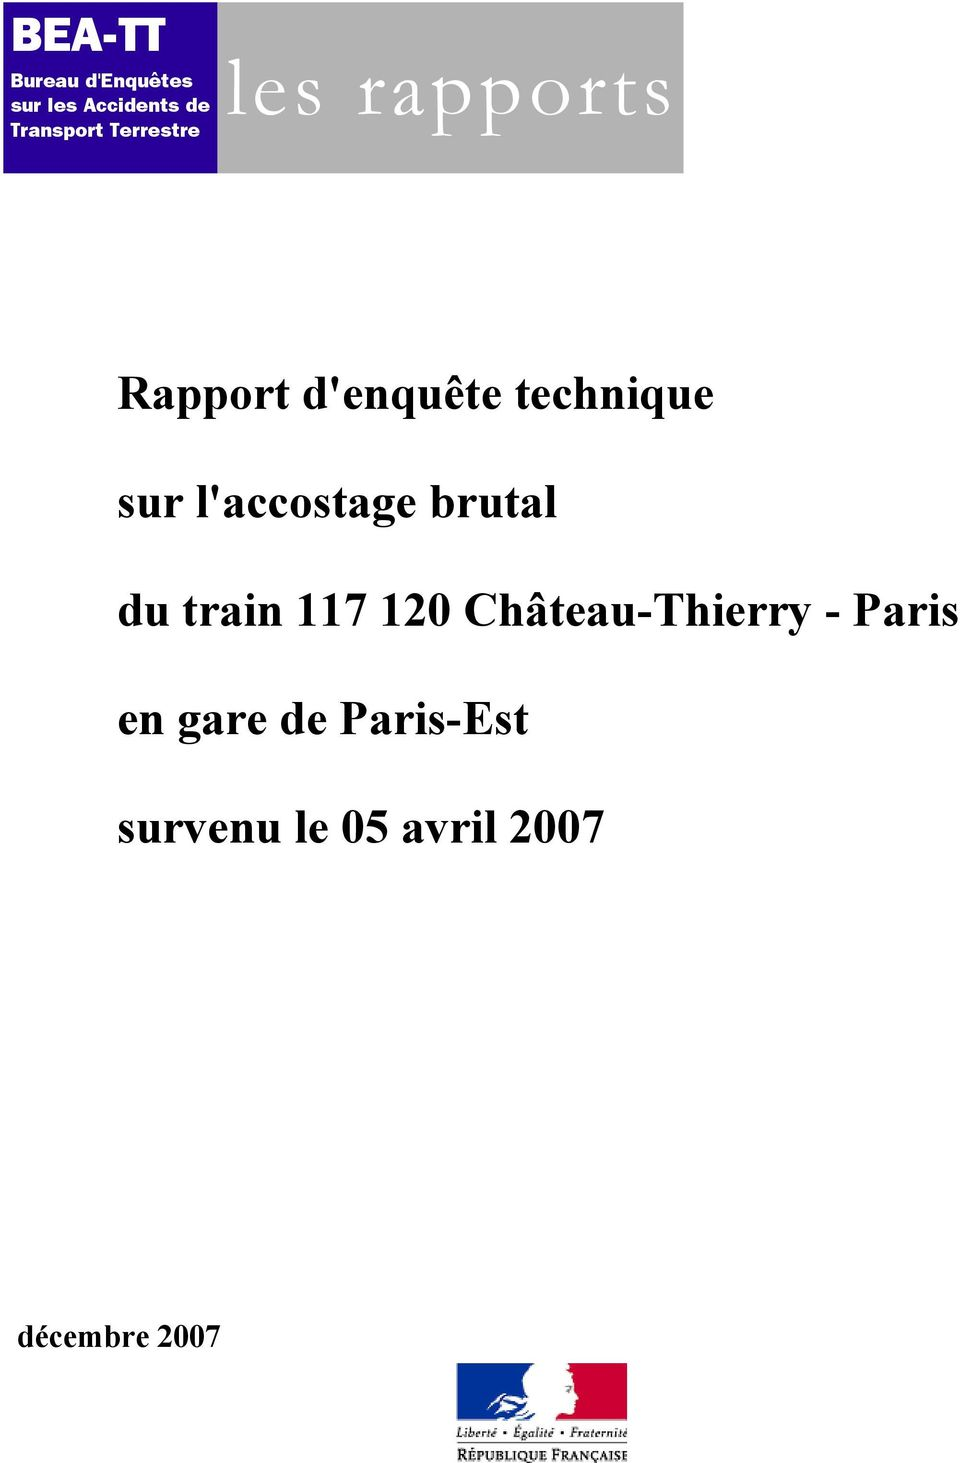 l'accostage brutal du train 117 120 hâteau-thierry -